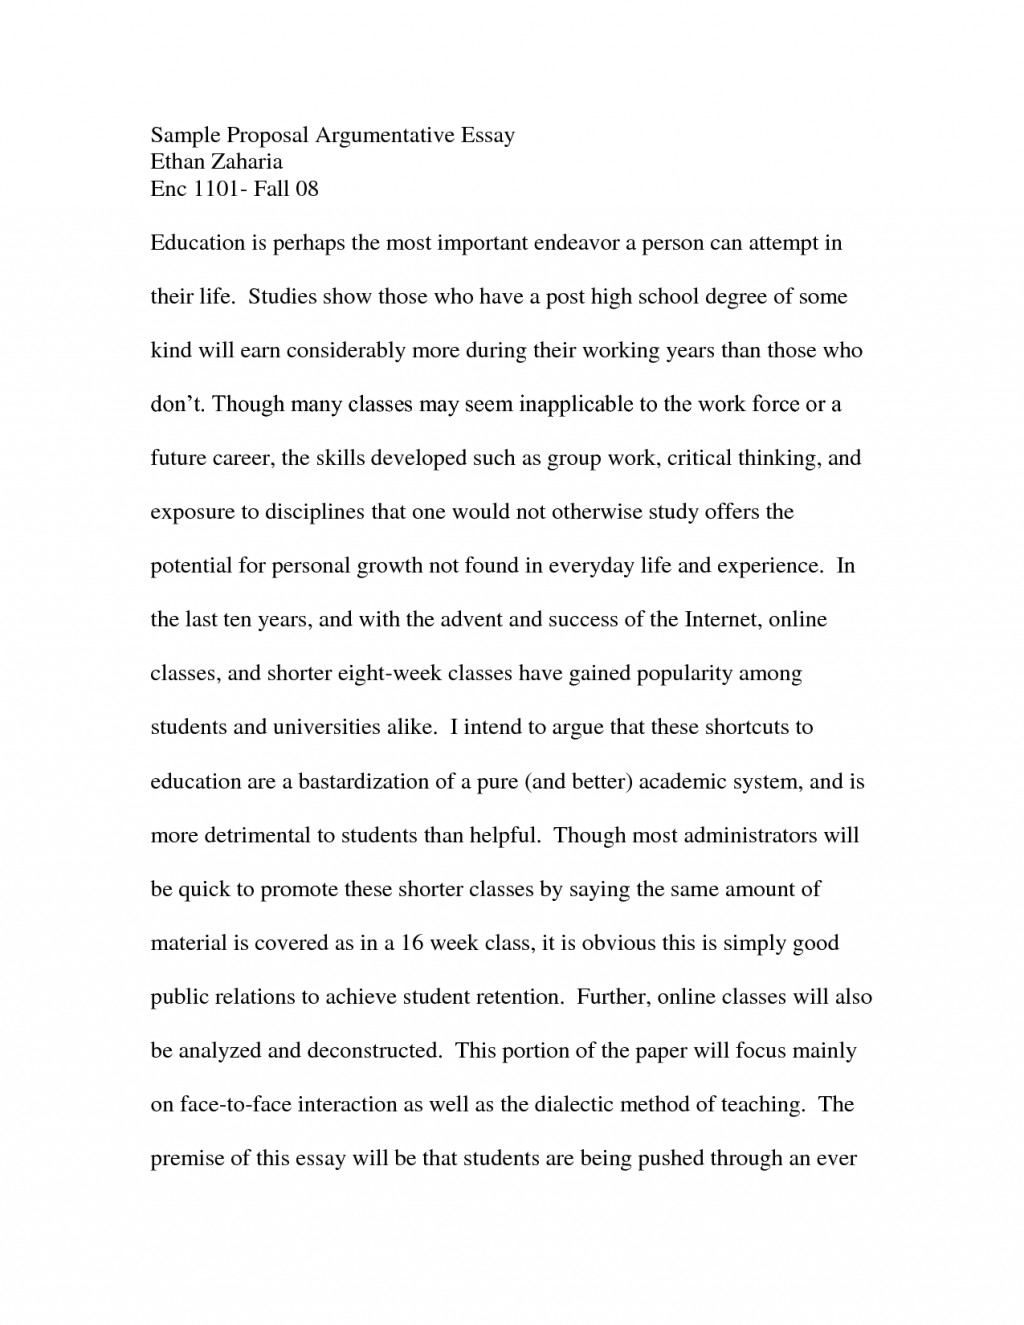 007 Essay Example 3d7hsocgst What Is Top A Proposal The Purpose Of Good Topic Argument Large